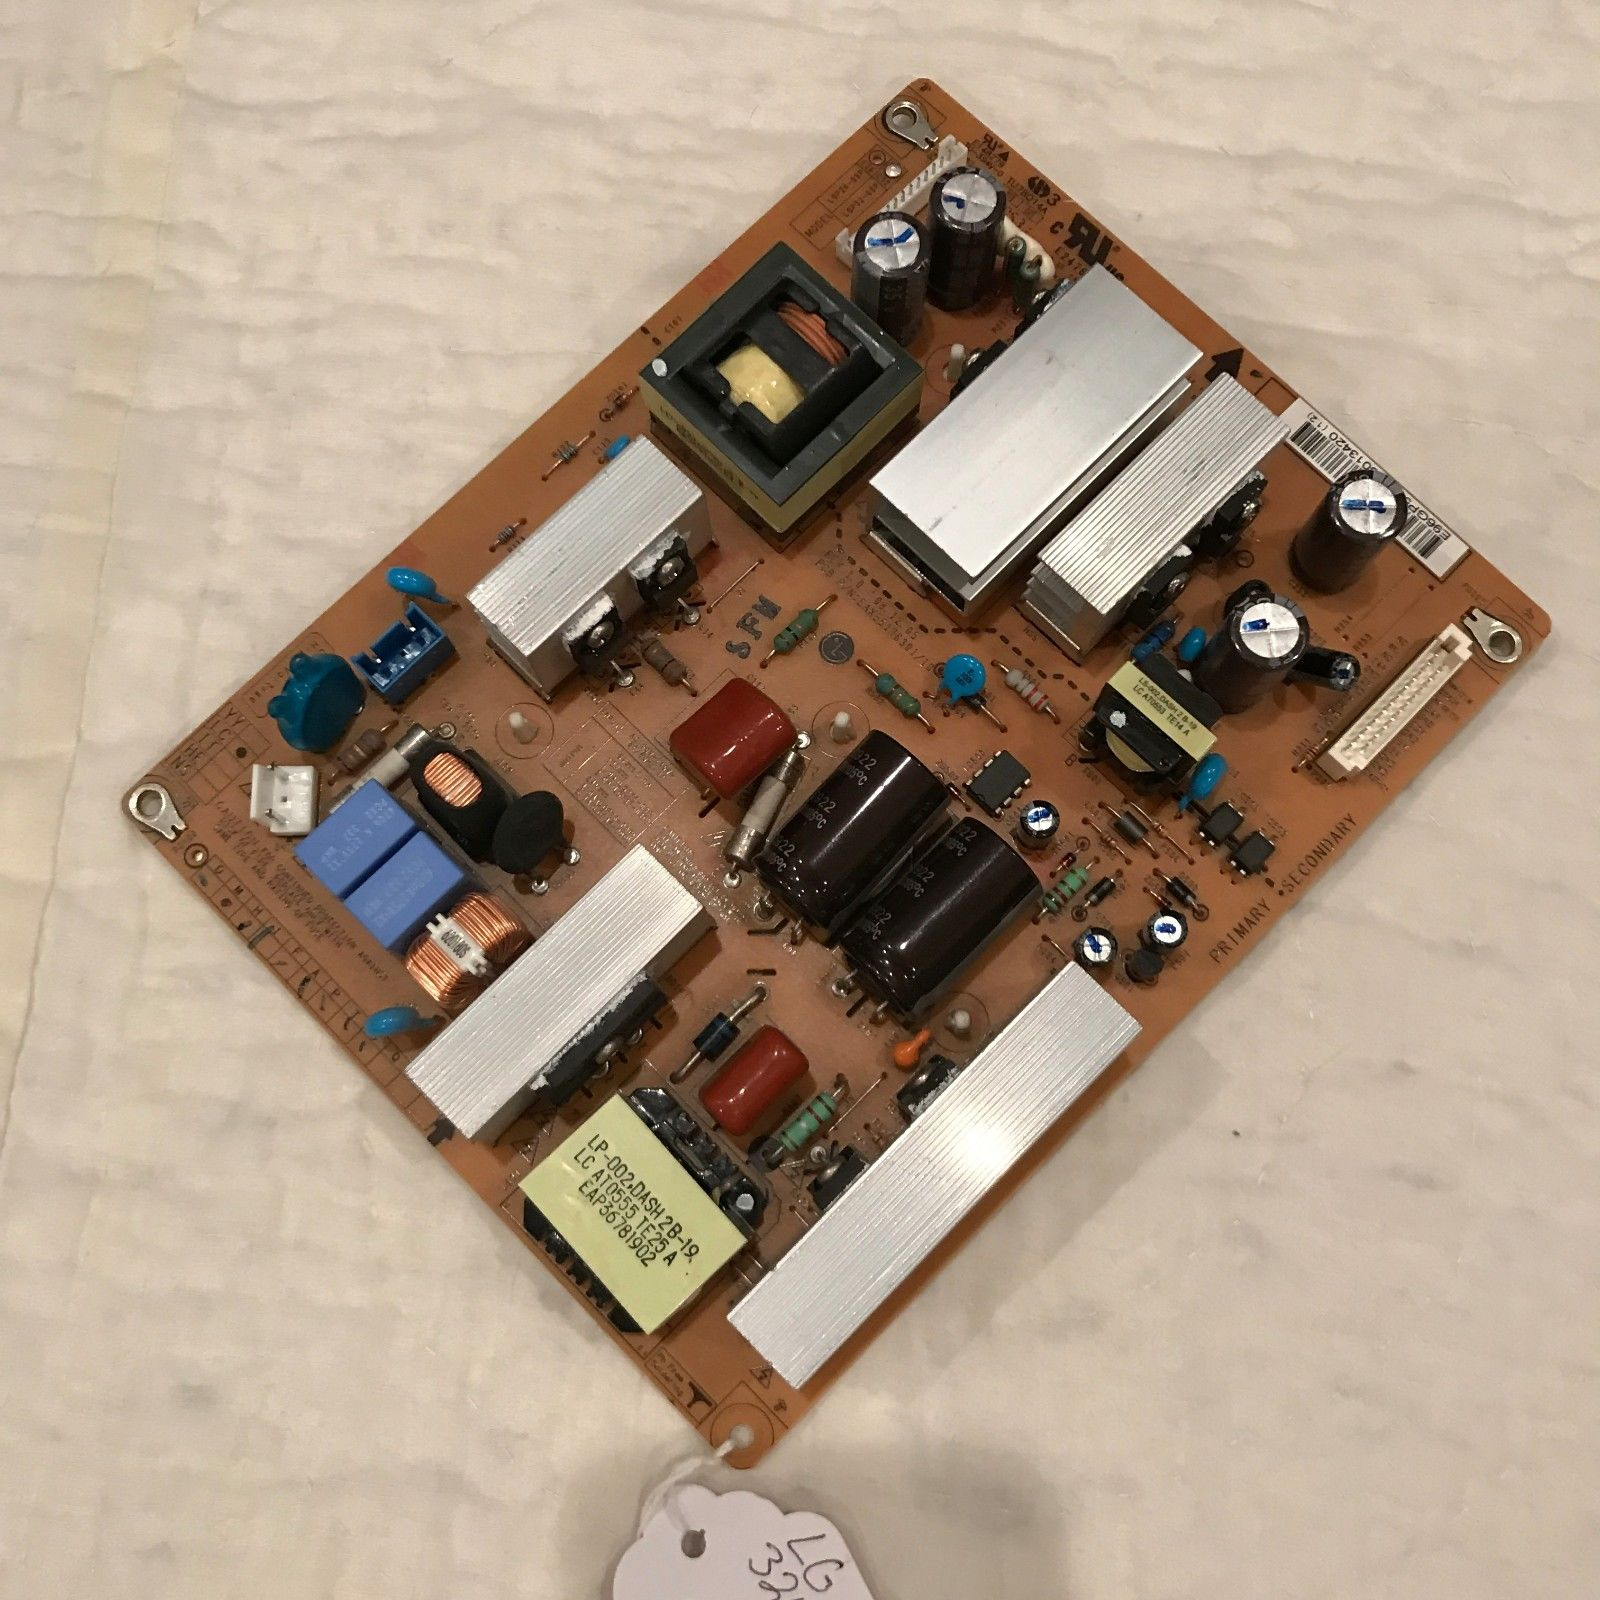 LG EAY58582801 POWER SUPPLY BOARD FOR 32LH30 AND OTHER MODELS